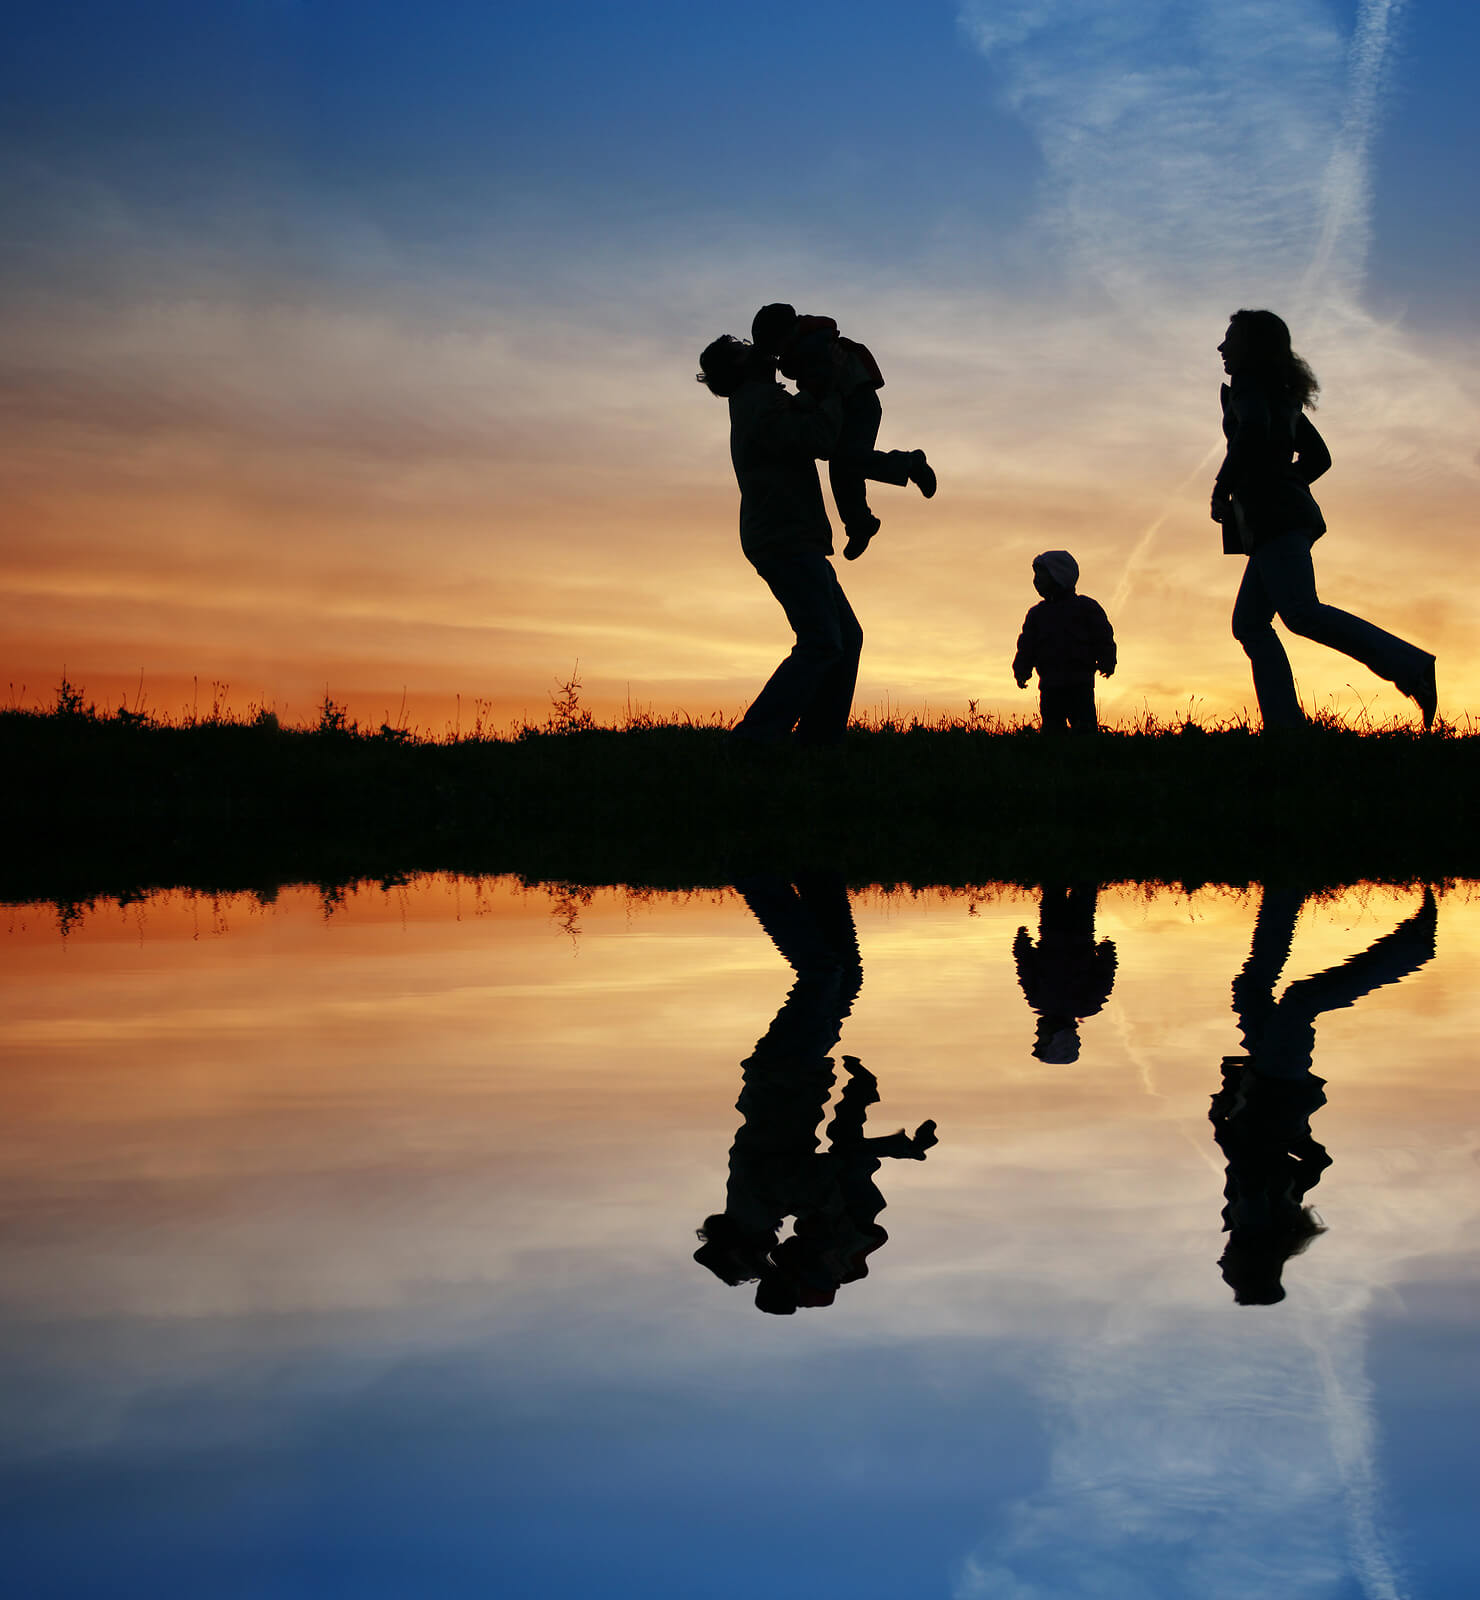 A silhouette of a family walk across the water as the sun rises. Contact brave minds psychological services to learn more about sexual violence prevention in Scotch Plains, NJ, parent counseling in Scotch Plains, NJ and other services.